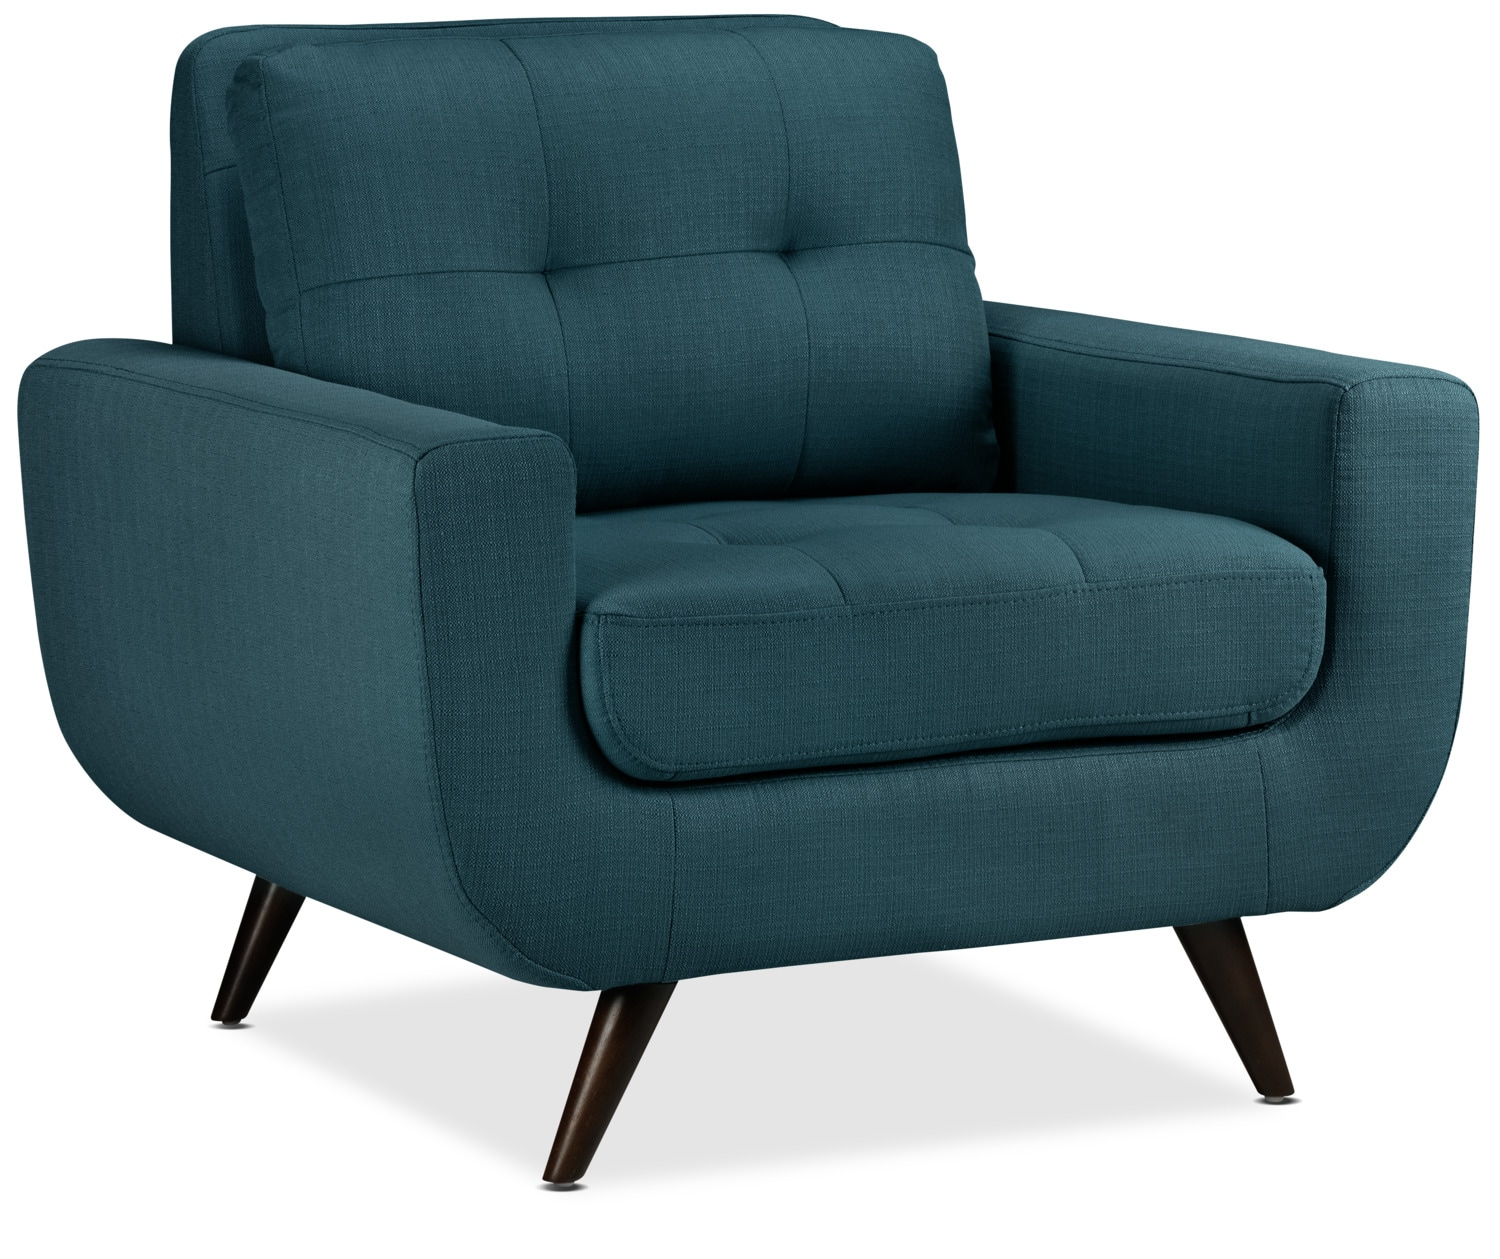 Julian Chair - Blue